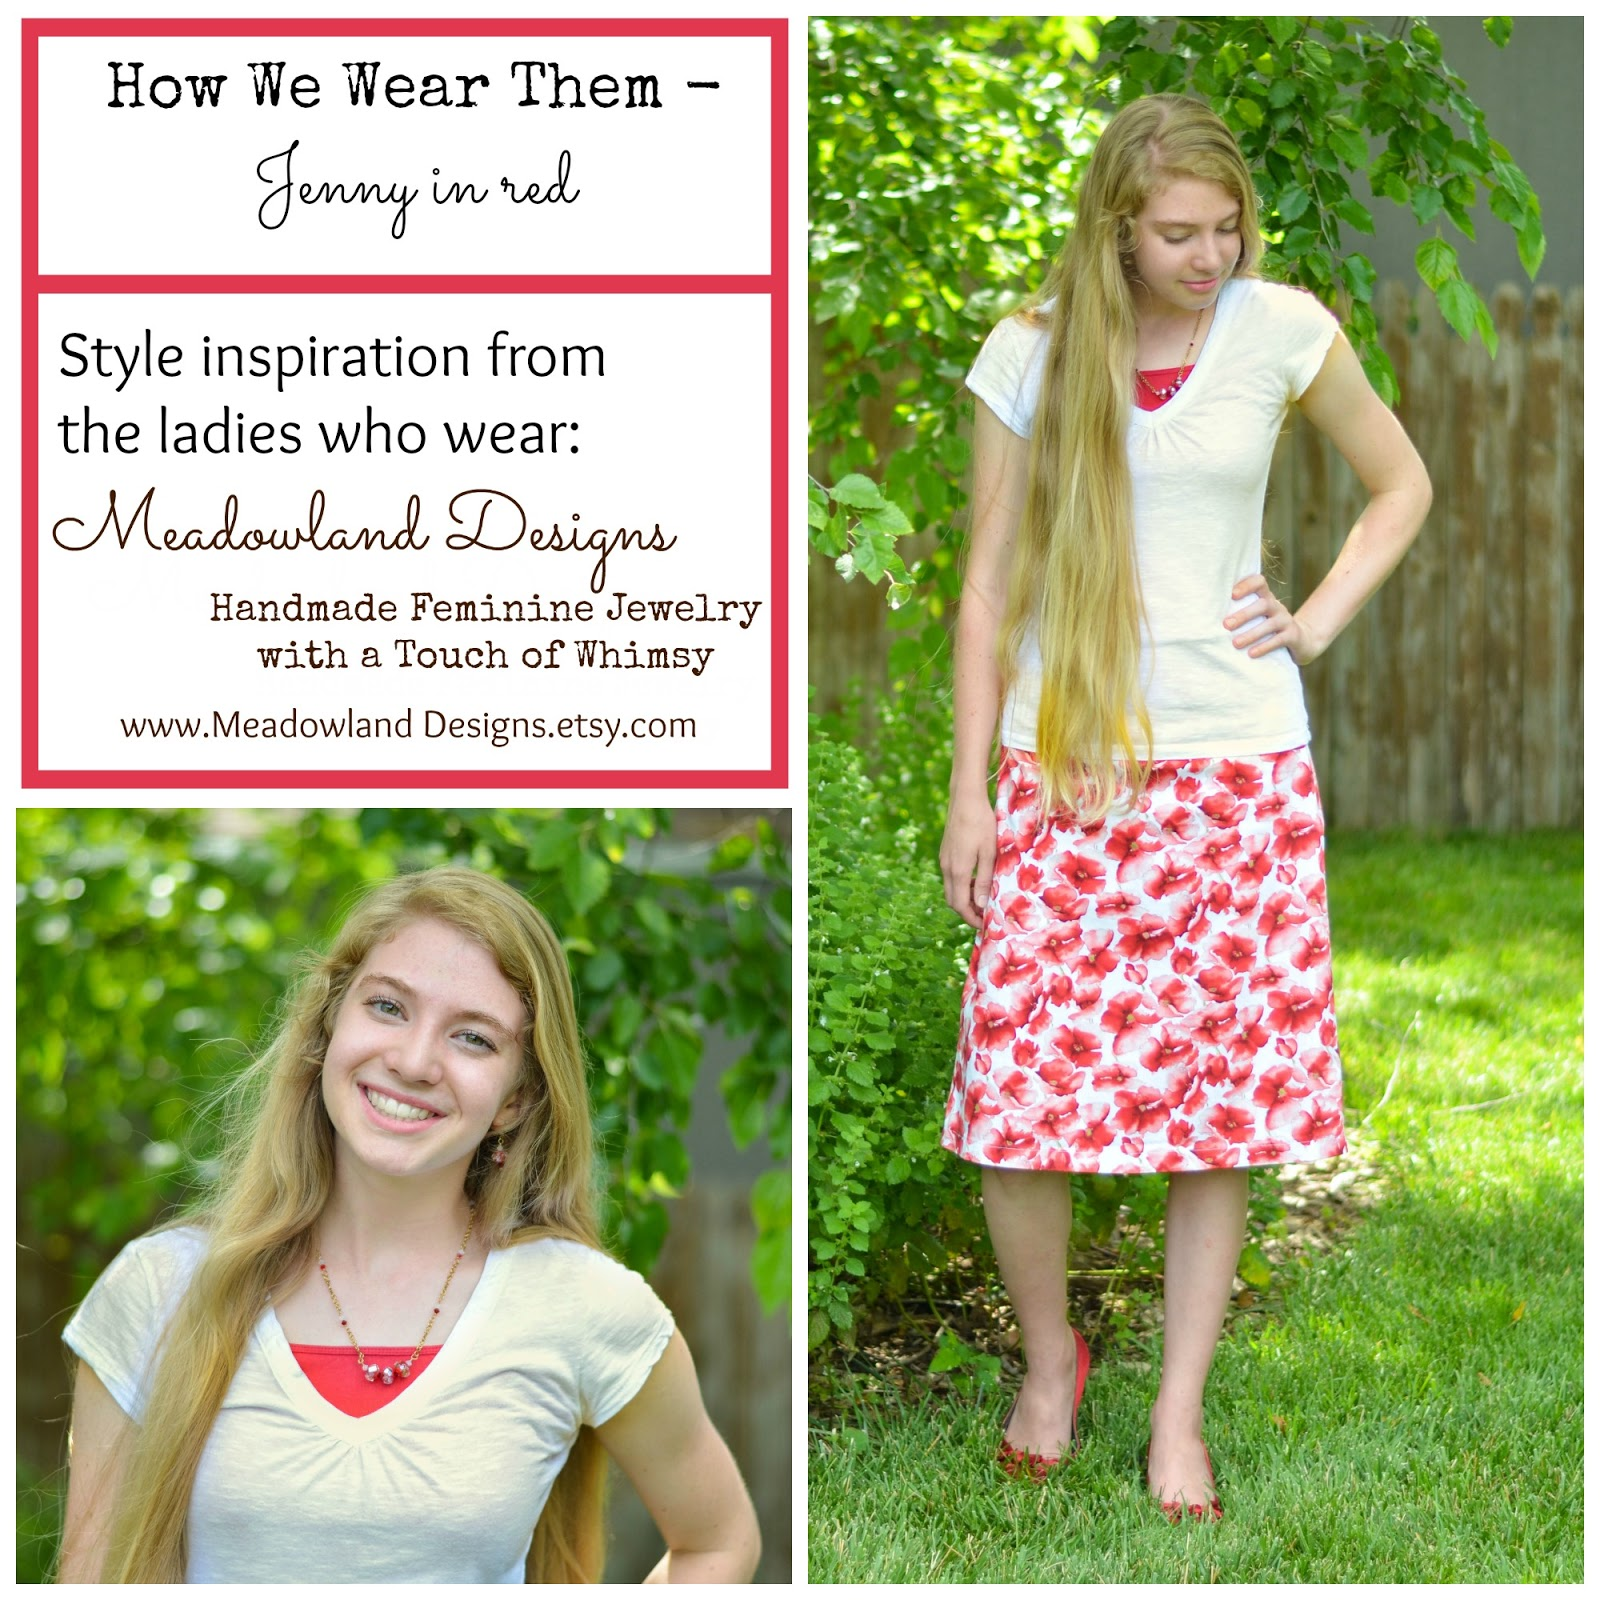 Style inspiration from Meadowland Designs